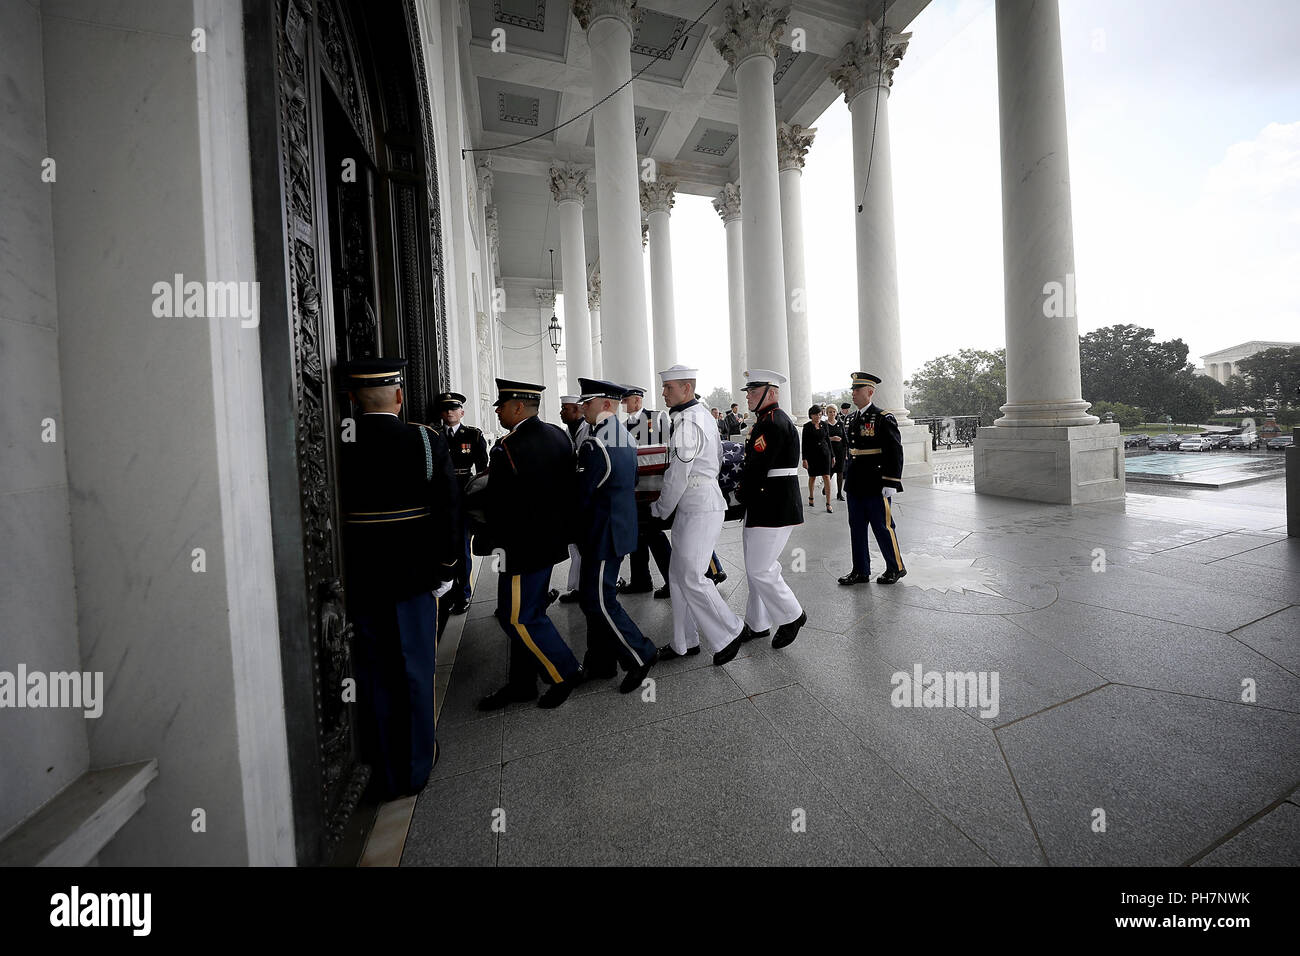 August 31, 2018 - Washington, District of Columbia, U.S. - GETTY POOLWASHINGTON, DC - AUGUST 31: A military honor guard team carries the casket of the late-Sen. John McCain (R-AZ) into the U.S. Capitol August 31, 2018 in Washington, DC. The late senator died August 25 at the age of 81 after a long battle with brain cancer. He will lie in state at the U.S. Capitol today, a rare honor bestowed on only 31 people in the past 166 years. Sen. McCain will be buried at his final resting place at the U.S. Naval Academy on Sunday. (Photo by Win McNamee/Getty Images) (Credit Image: © Win Mcnamee/CNP vi - Stock Image